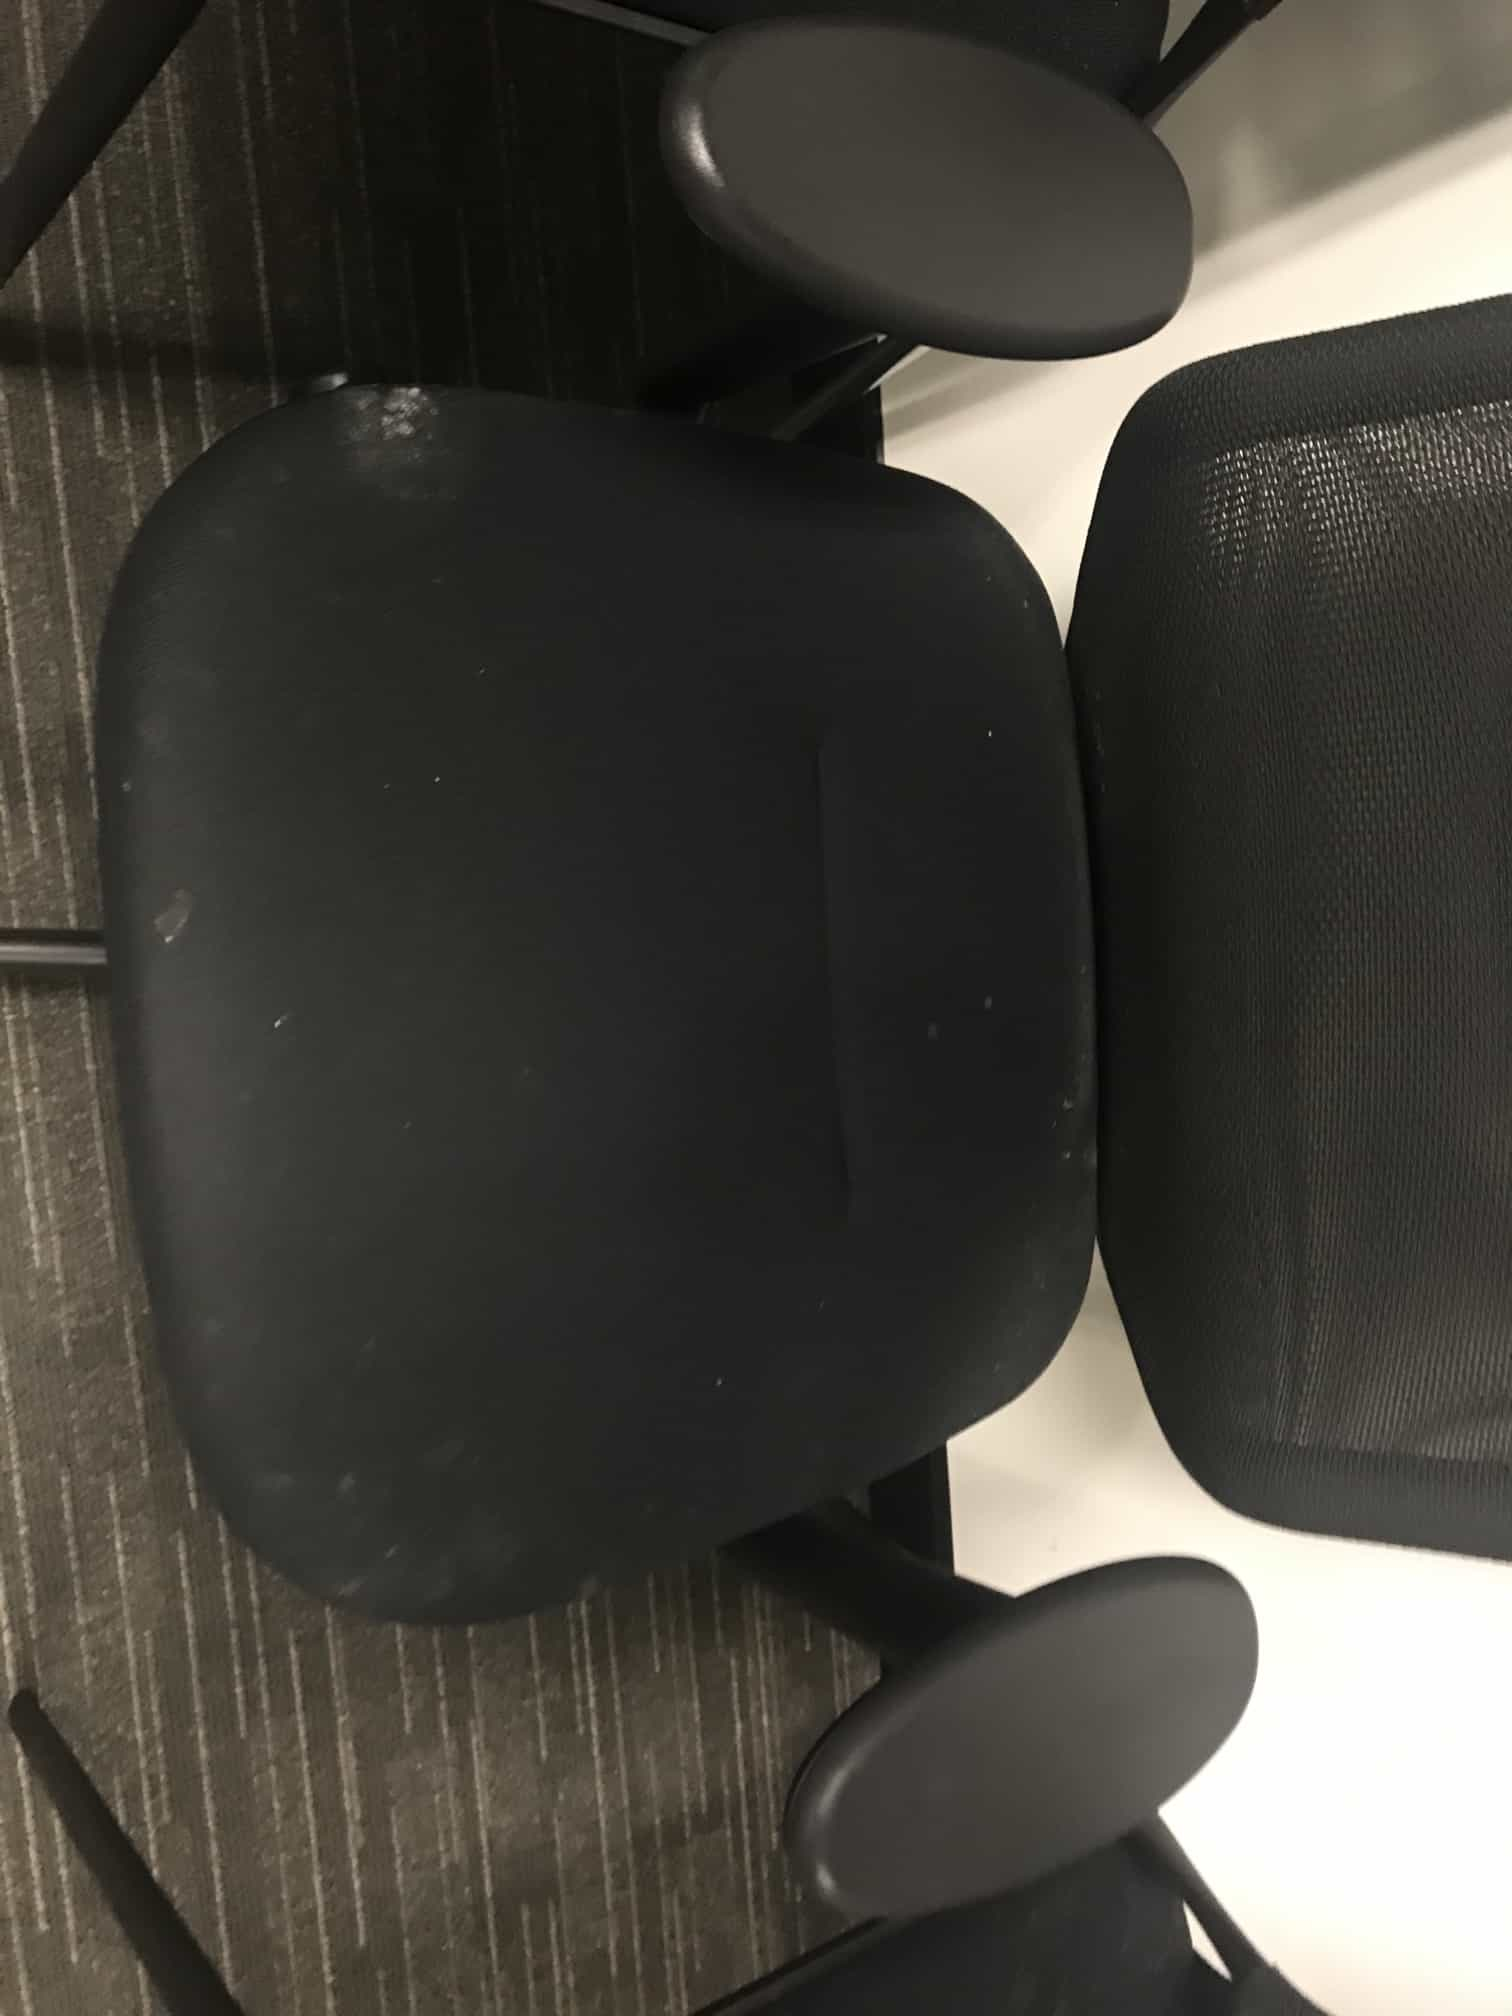 mould on black office chair